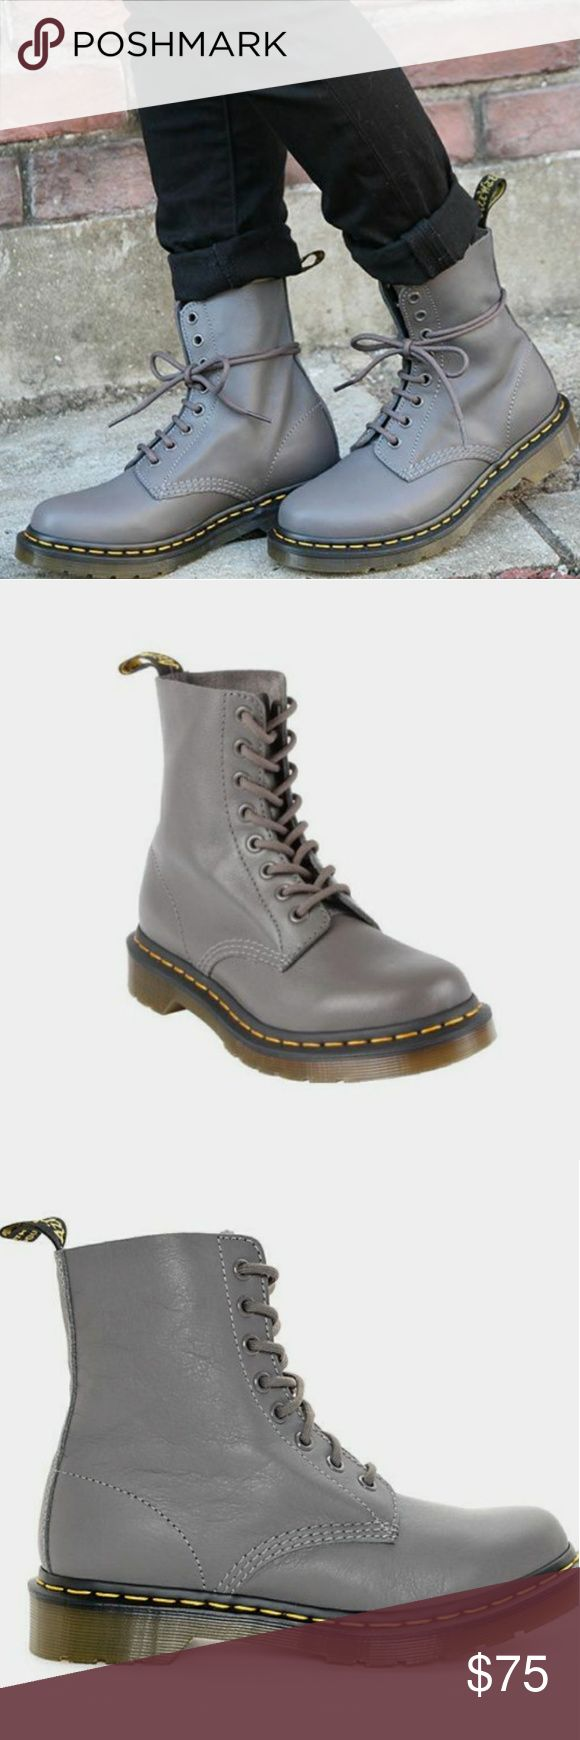 Women's Dr. Martens Pascal Combat Boots - New New without box. Please note: small mark on the inside of shoe as seen in last photo. Not visible from outside of shoe. Women's size 10.  Pascal 8 Eye Lead Virginia boots by Dr. Martens. Soft, fine-grained nappa leather upper. Air-cushion sole with tread pattern for good impact absorption and slip resistance. Sole is resistant to oil, fat, acid, petrol and alkali. Goodyear welt construction for durability. Perforated footbed. 8 metal eyelets with…